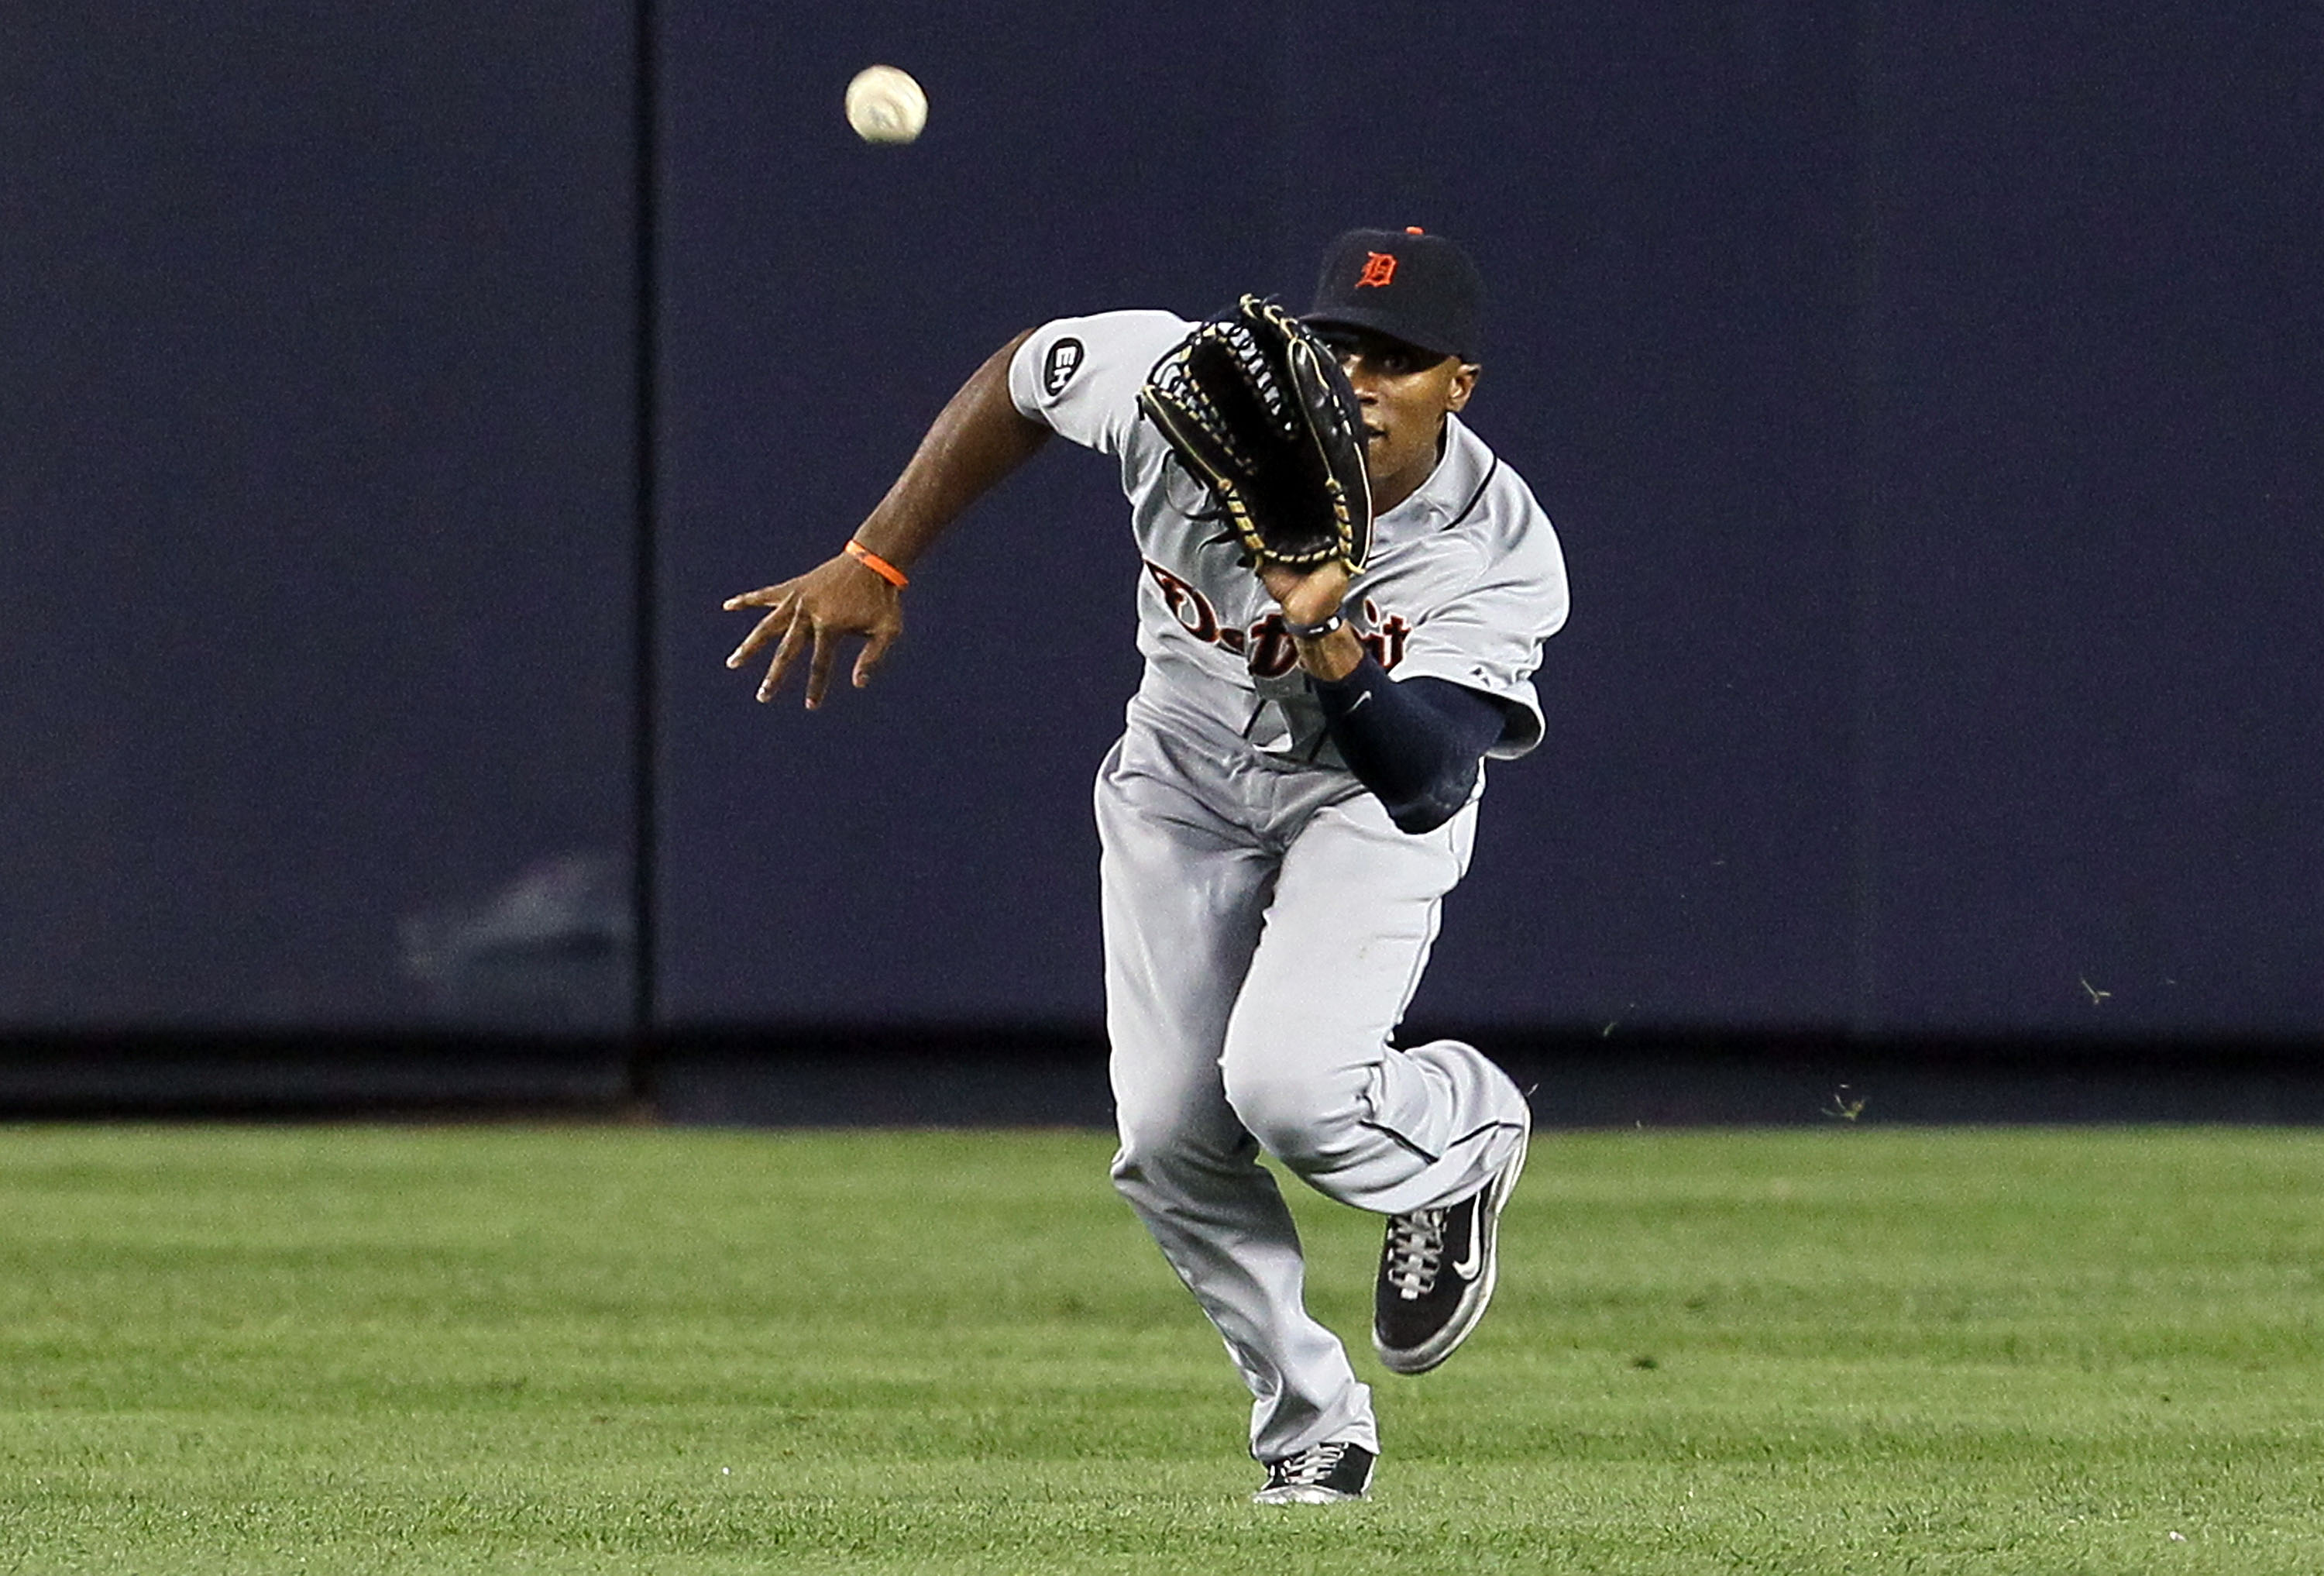 NEW YORK - AUGUST 16:  Austin Jackson #14 of the Detroit Tigers makes a catch for an out against the New York Yankees on August 16, 2010 at Yankee Stadium in the Bronx borough of New York City.  (Photo by Jim McIsaac/Getty Images)